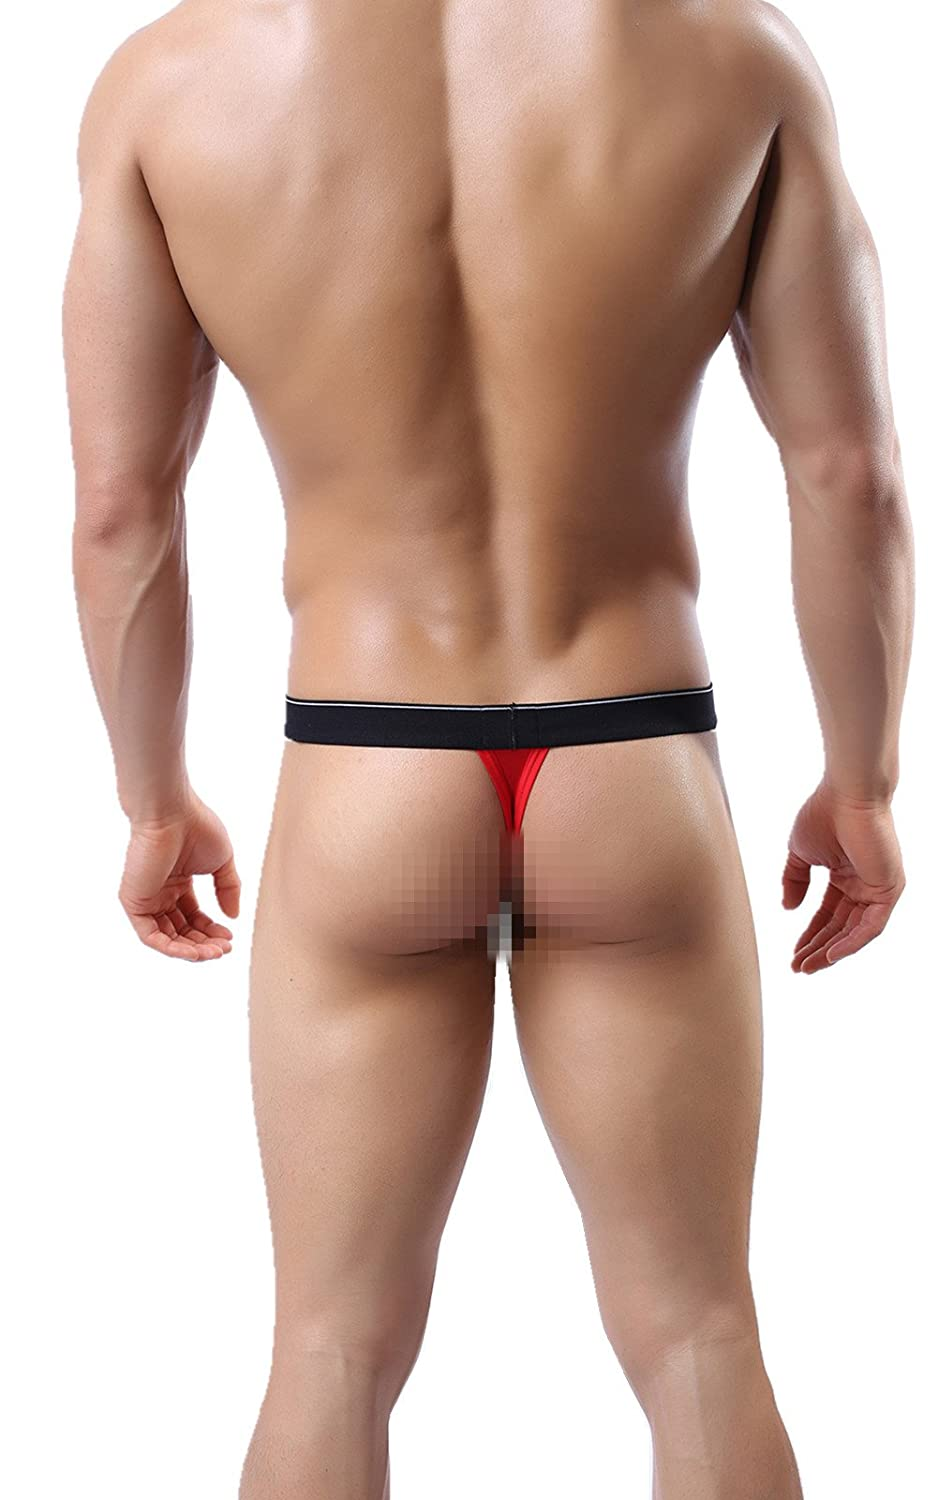 MIBOER58 Men's Underwear Transparent Thong G-String T-Back Bikini Briefs Swimsuit Red) SYJIMEIJI